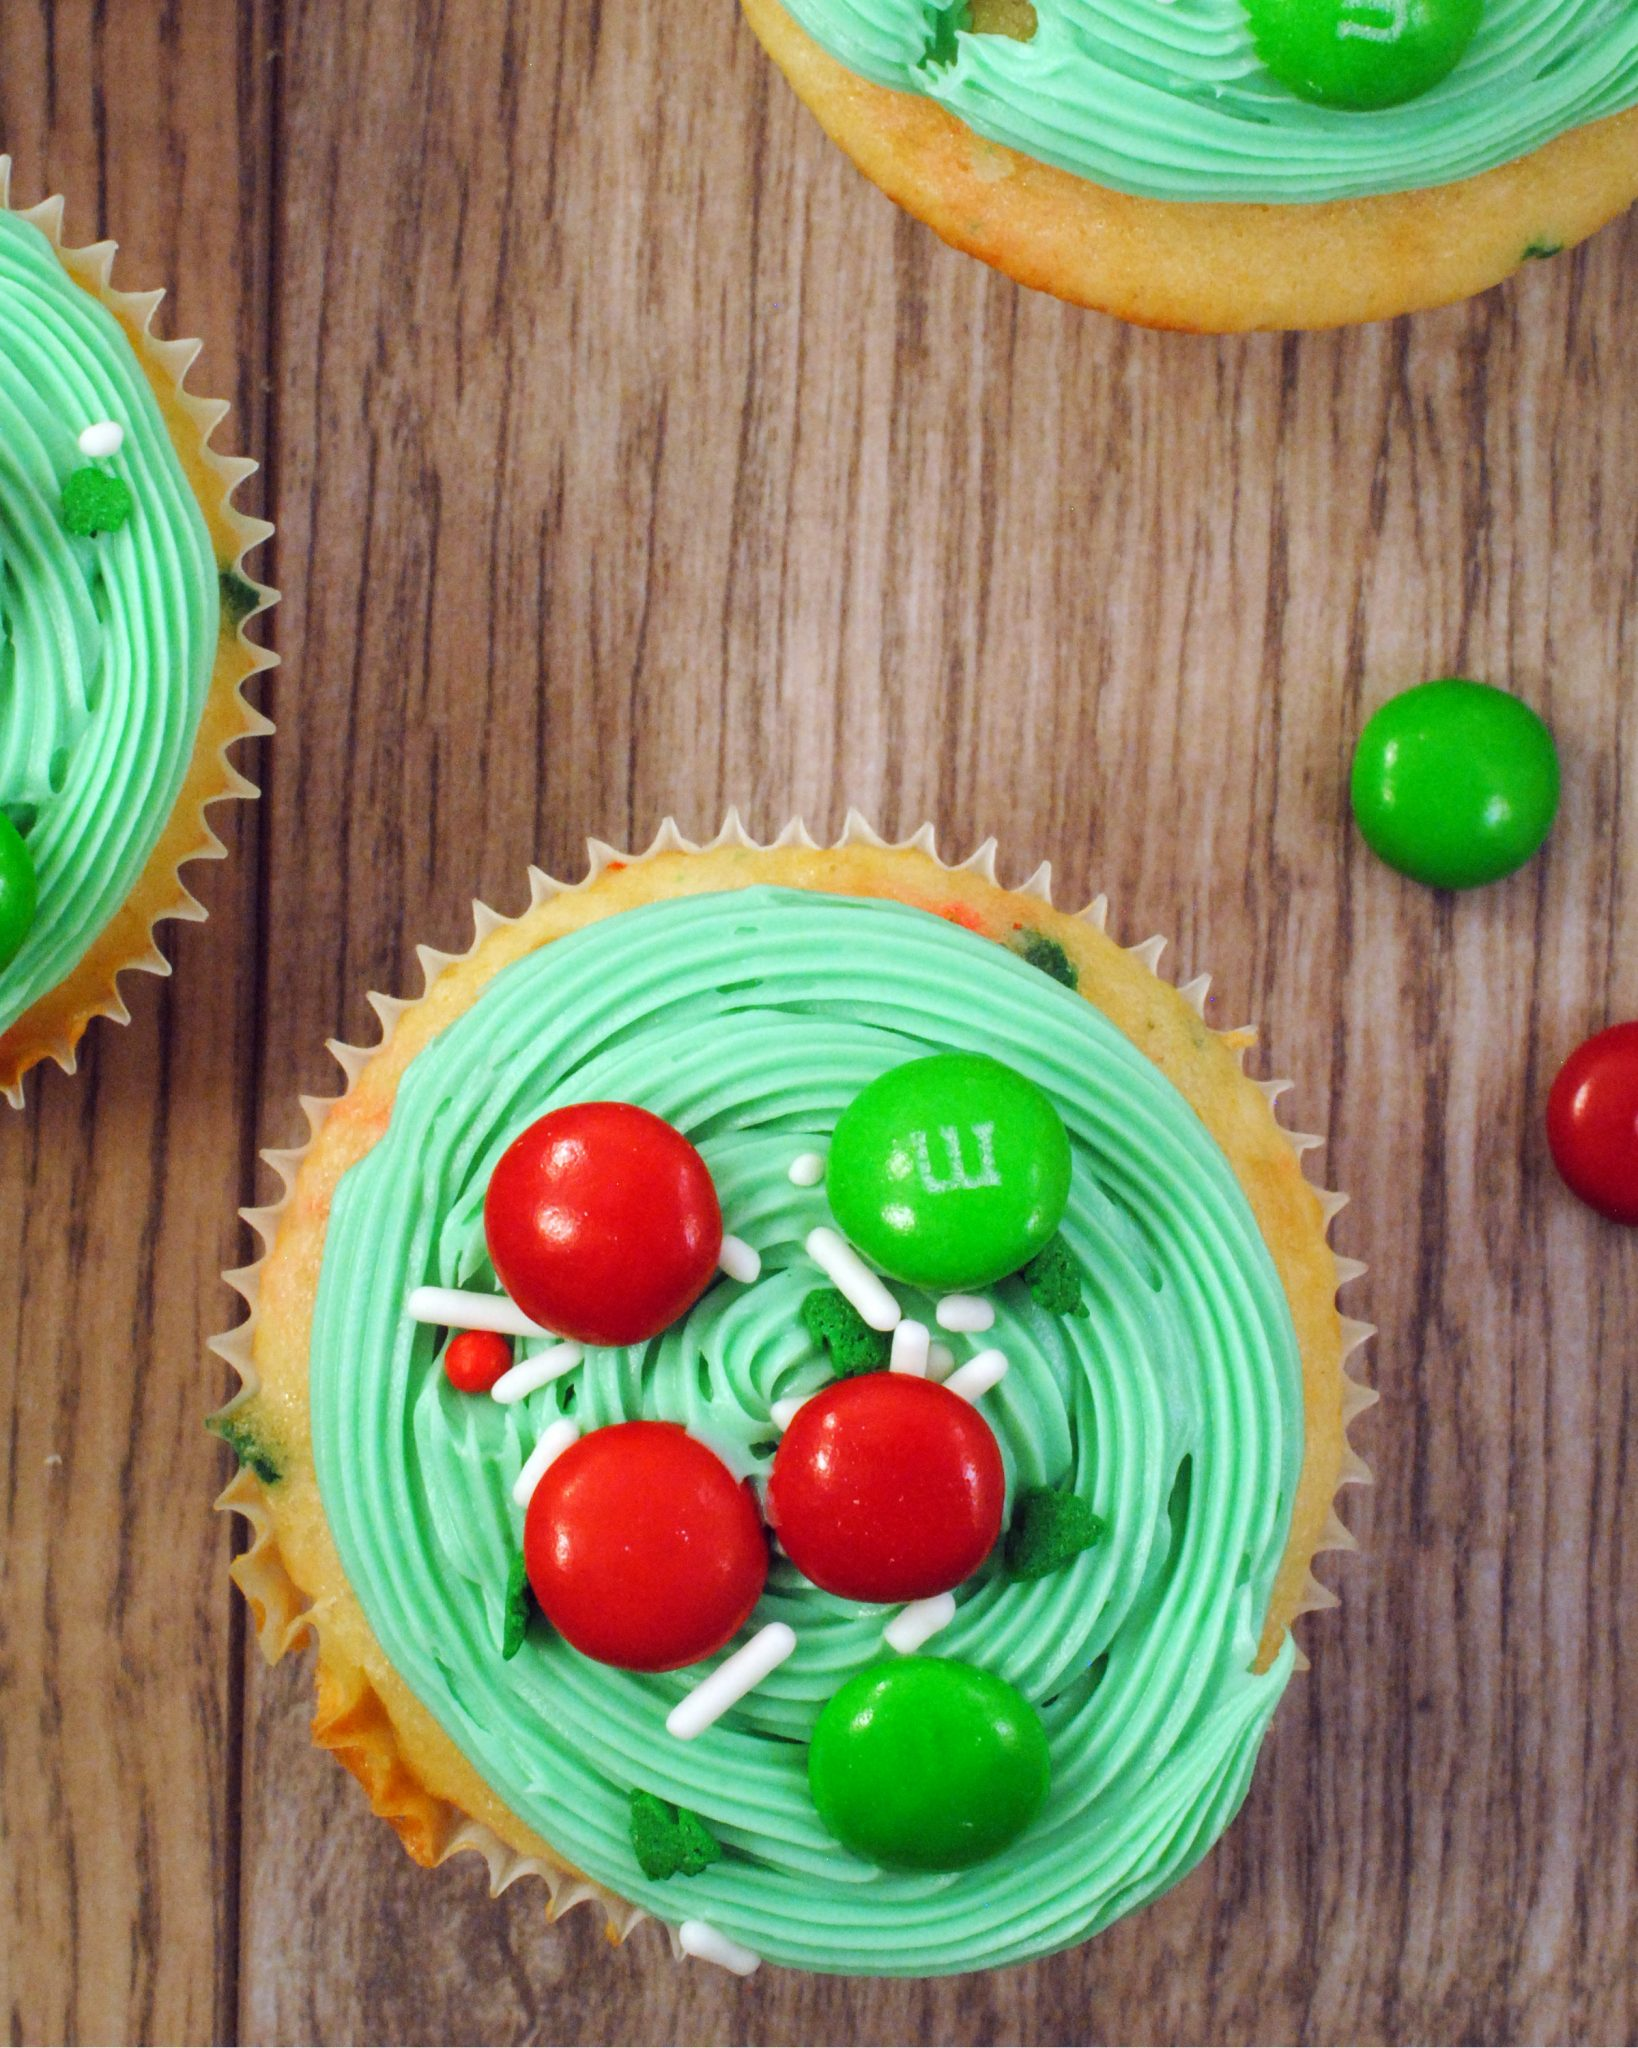 A festive Funfetti® cupake that has M&M's® White Peppermint baked right in and decorated with M&M's® Holiday Milk Chocolate for real festive fun